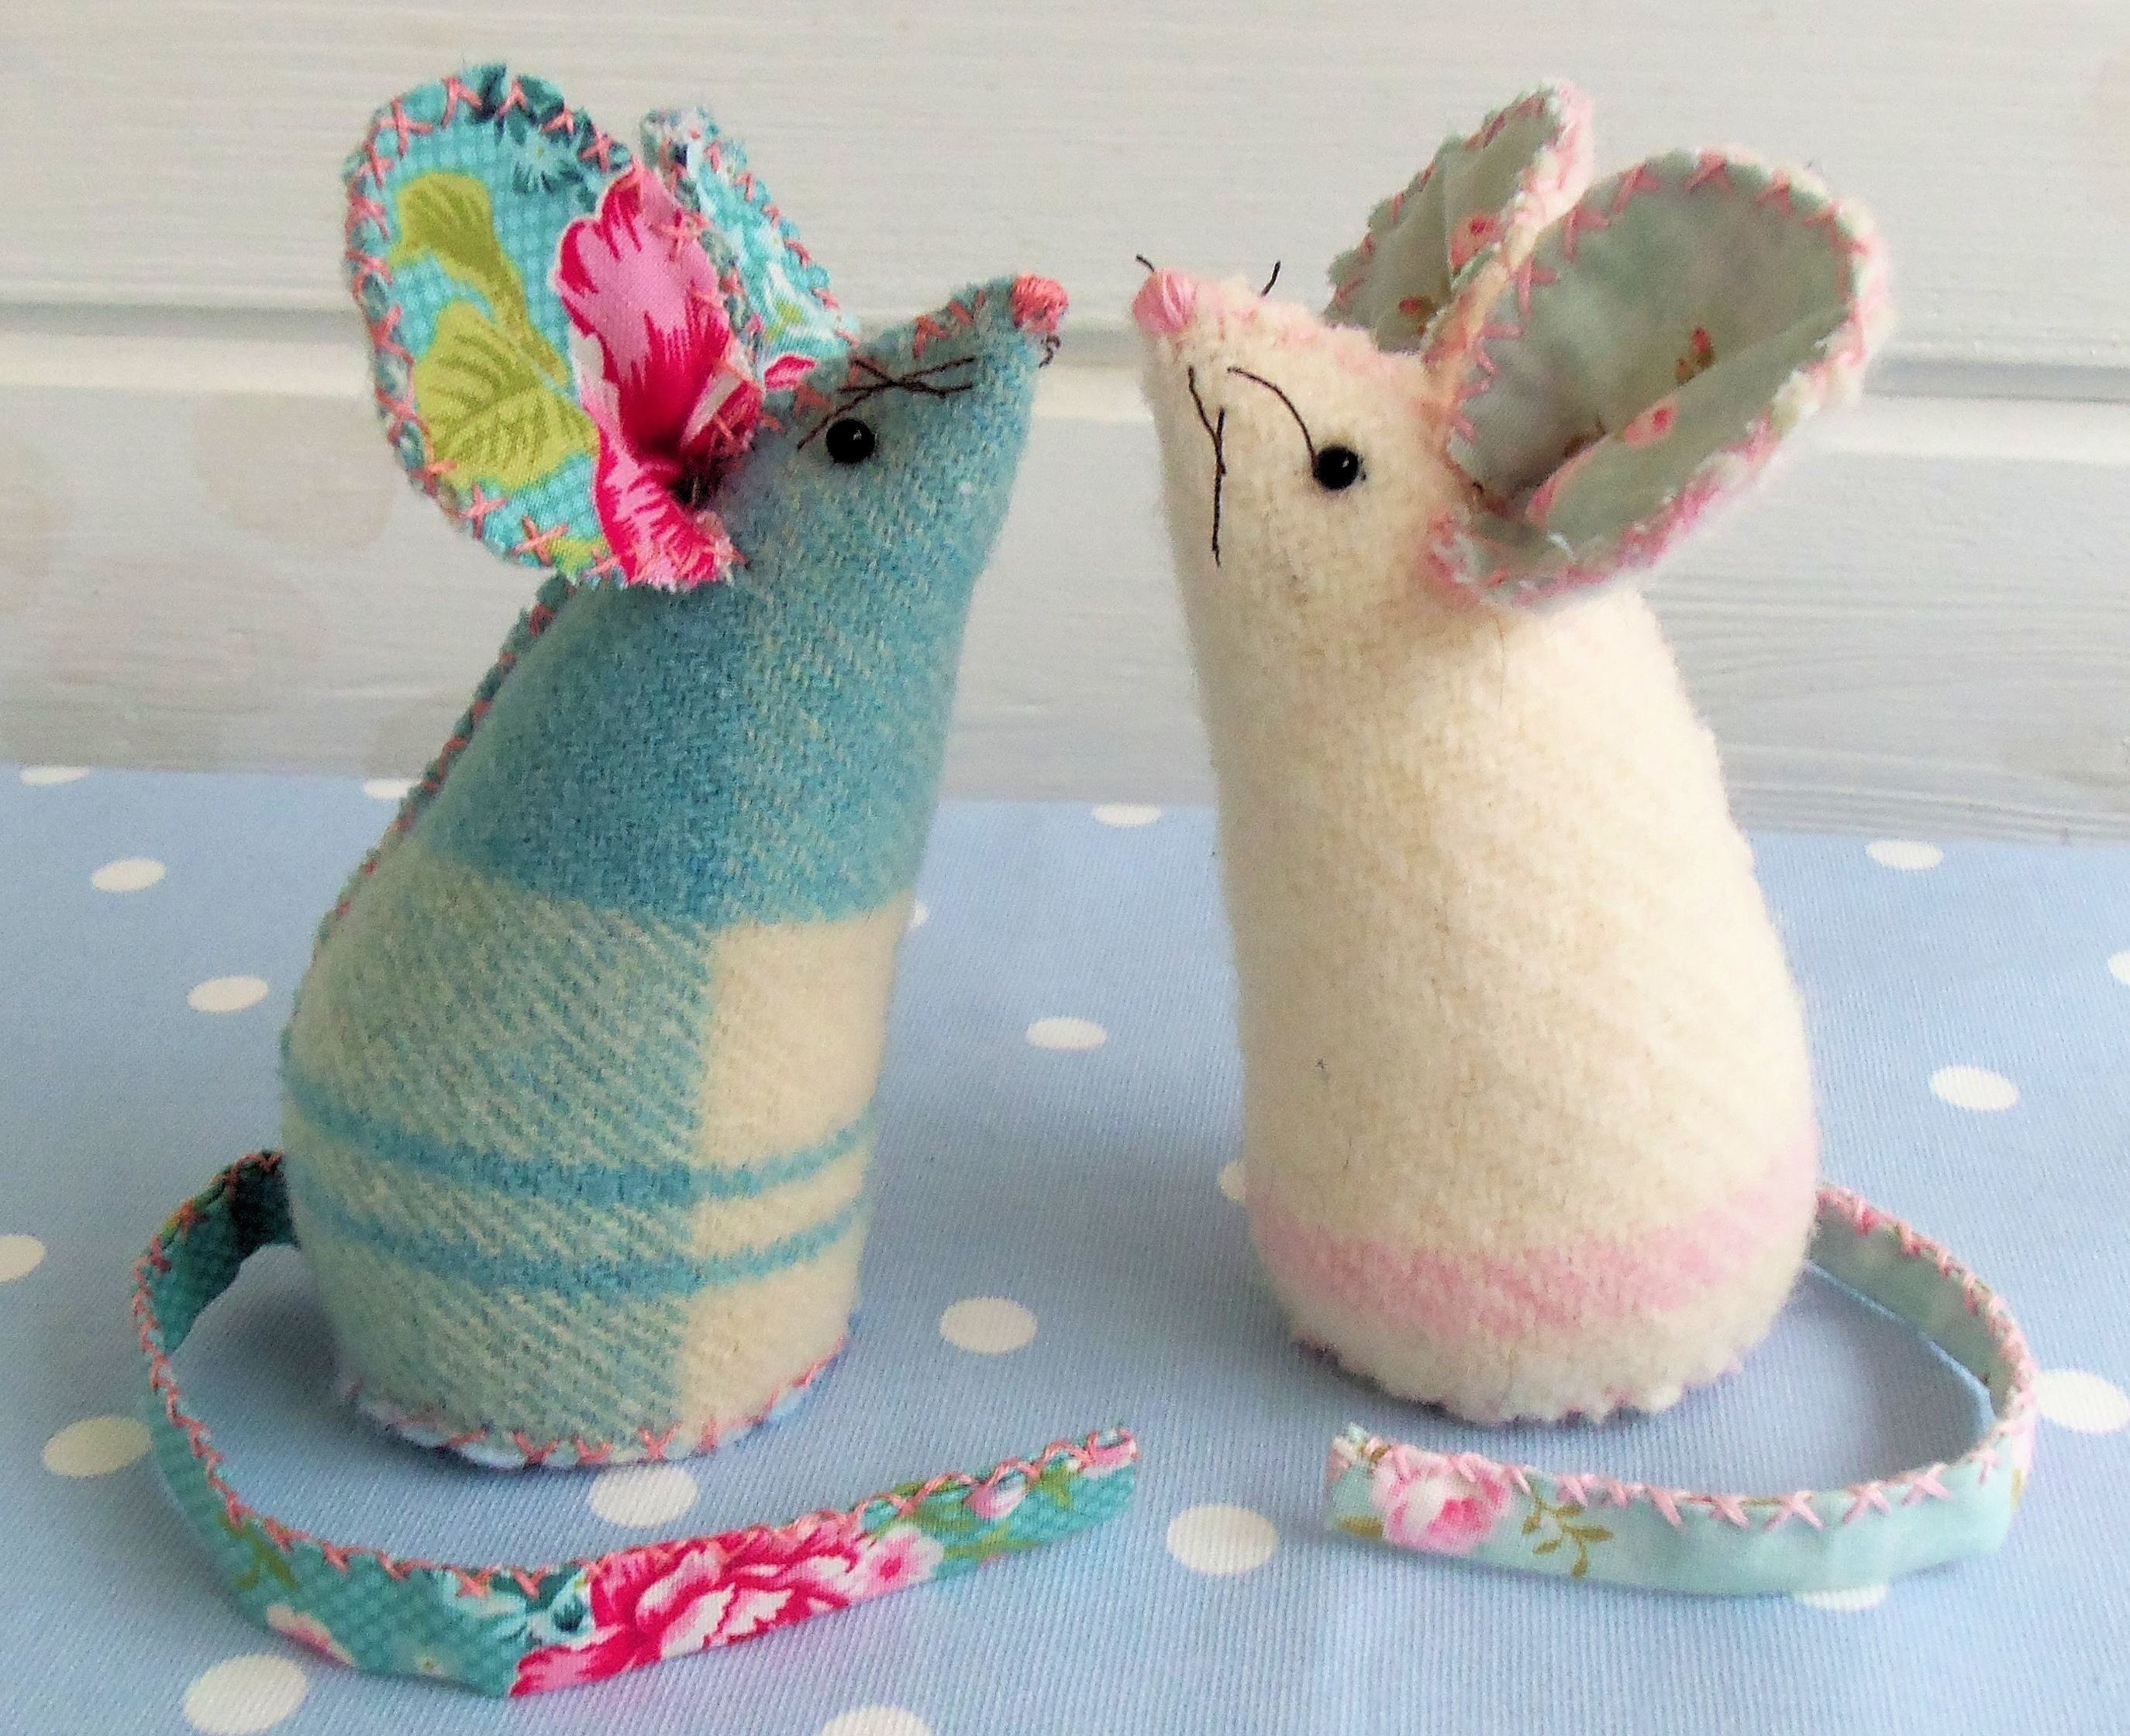 Cushion Patterns Lovely Pin Cushion Mice · How to Make A Pin Cushions · Sewing On Of Lovely 43 Images Cushion Patterns